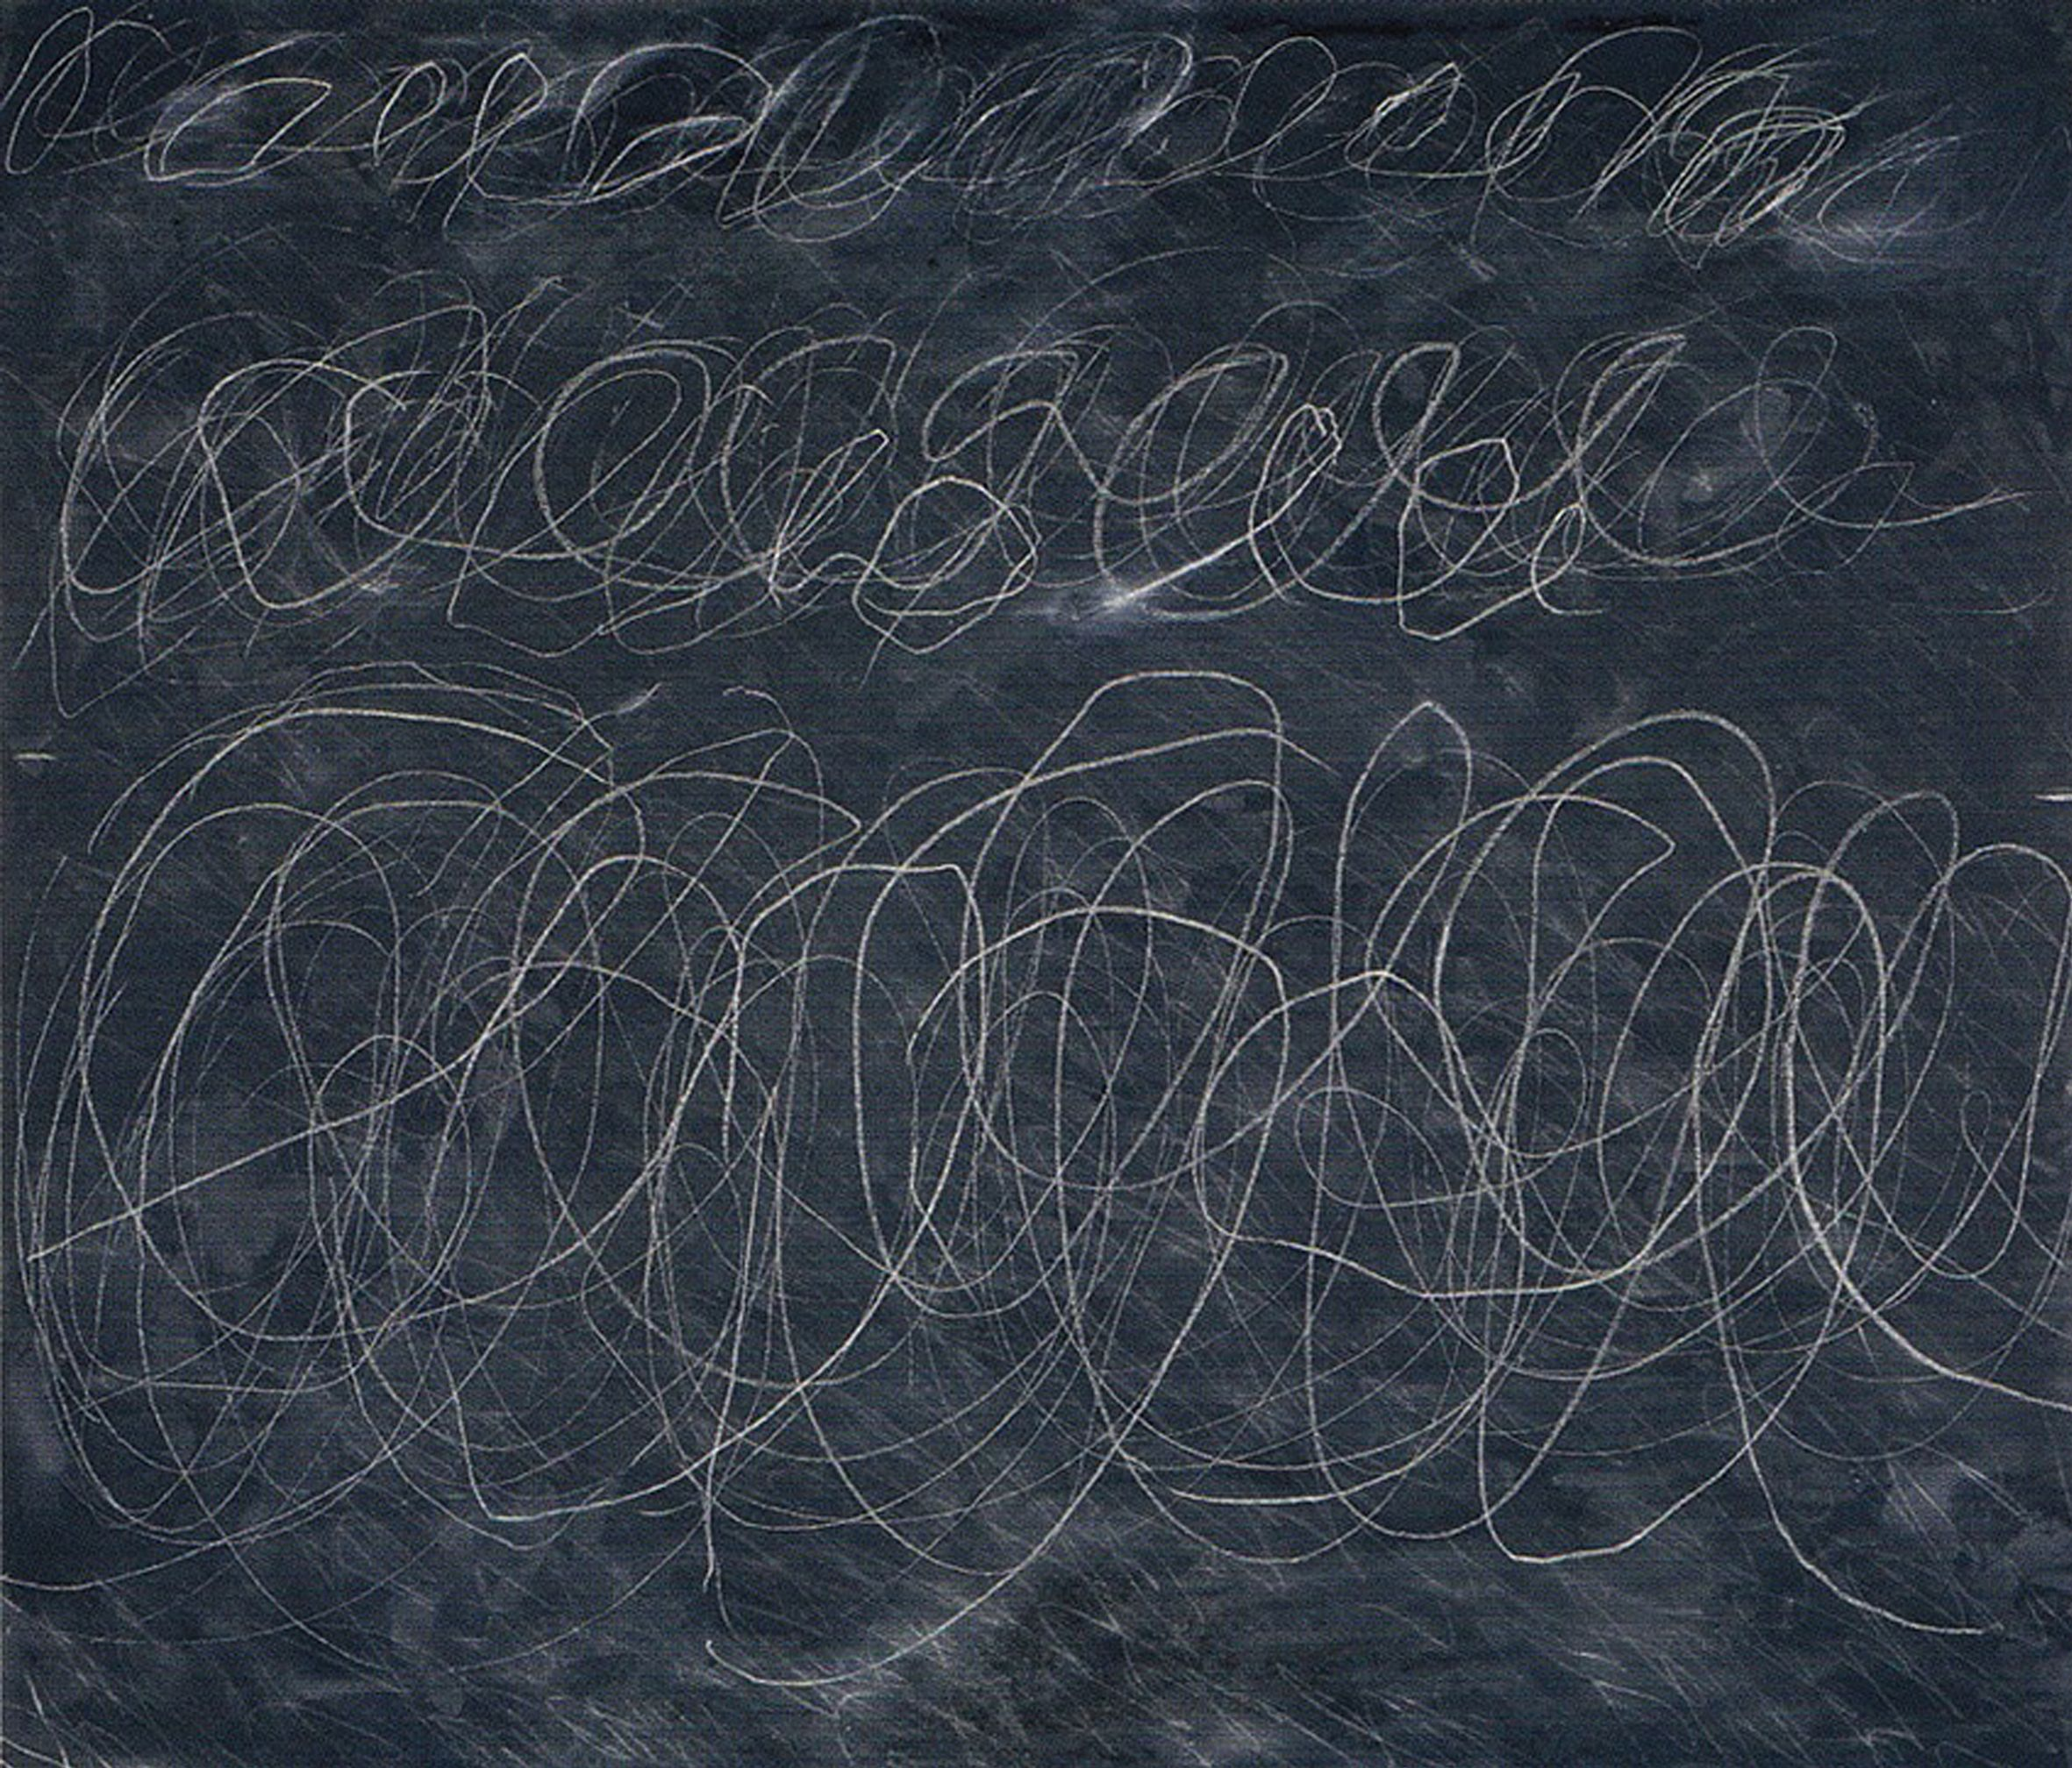 Untitled, 1970 par Cy Twombly (1928-2011)